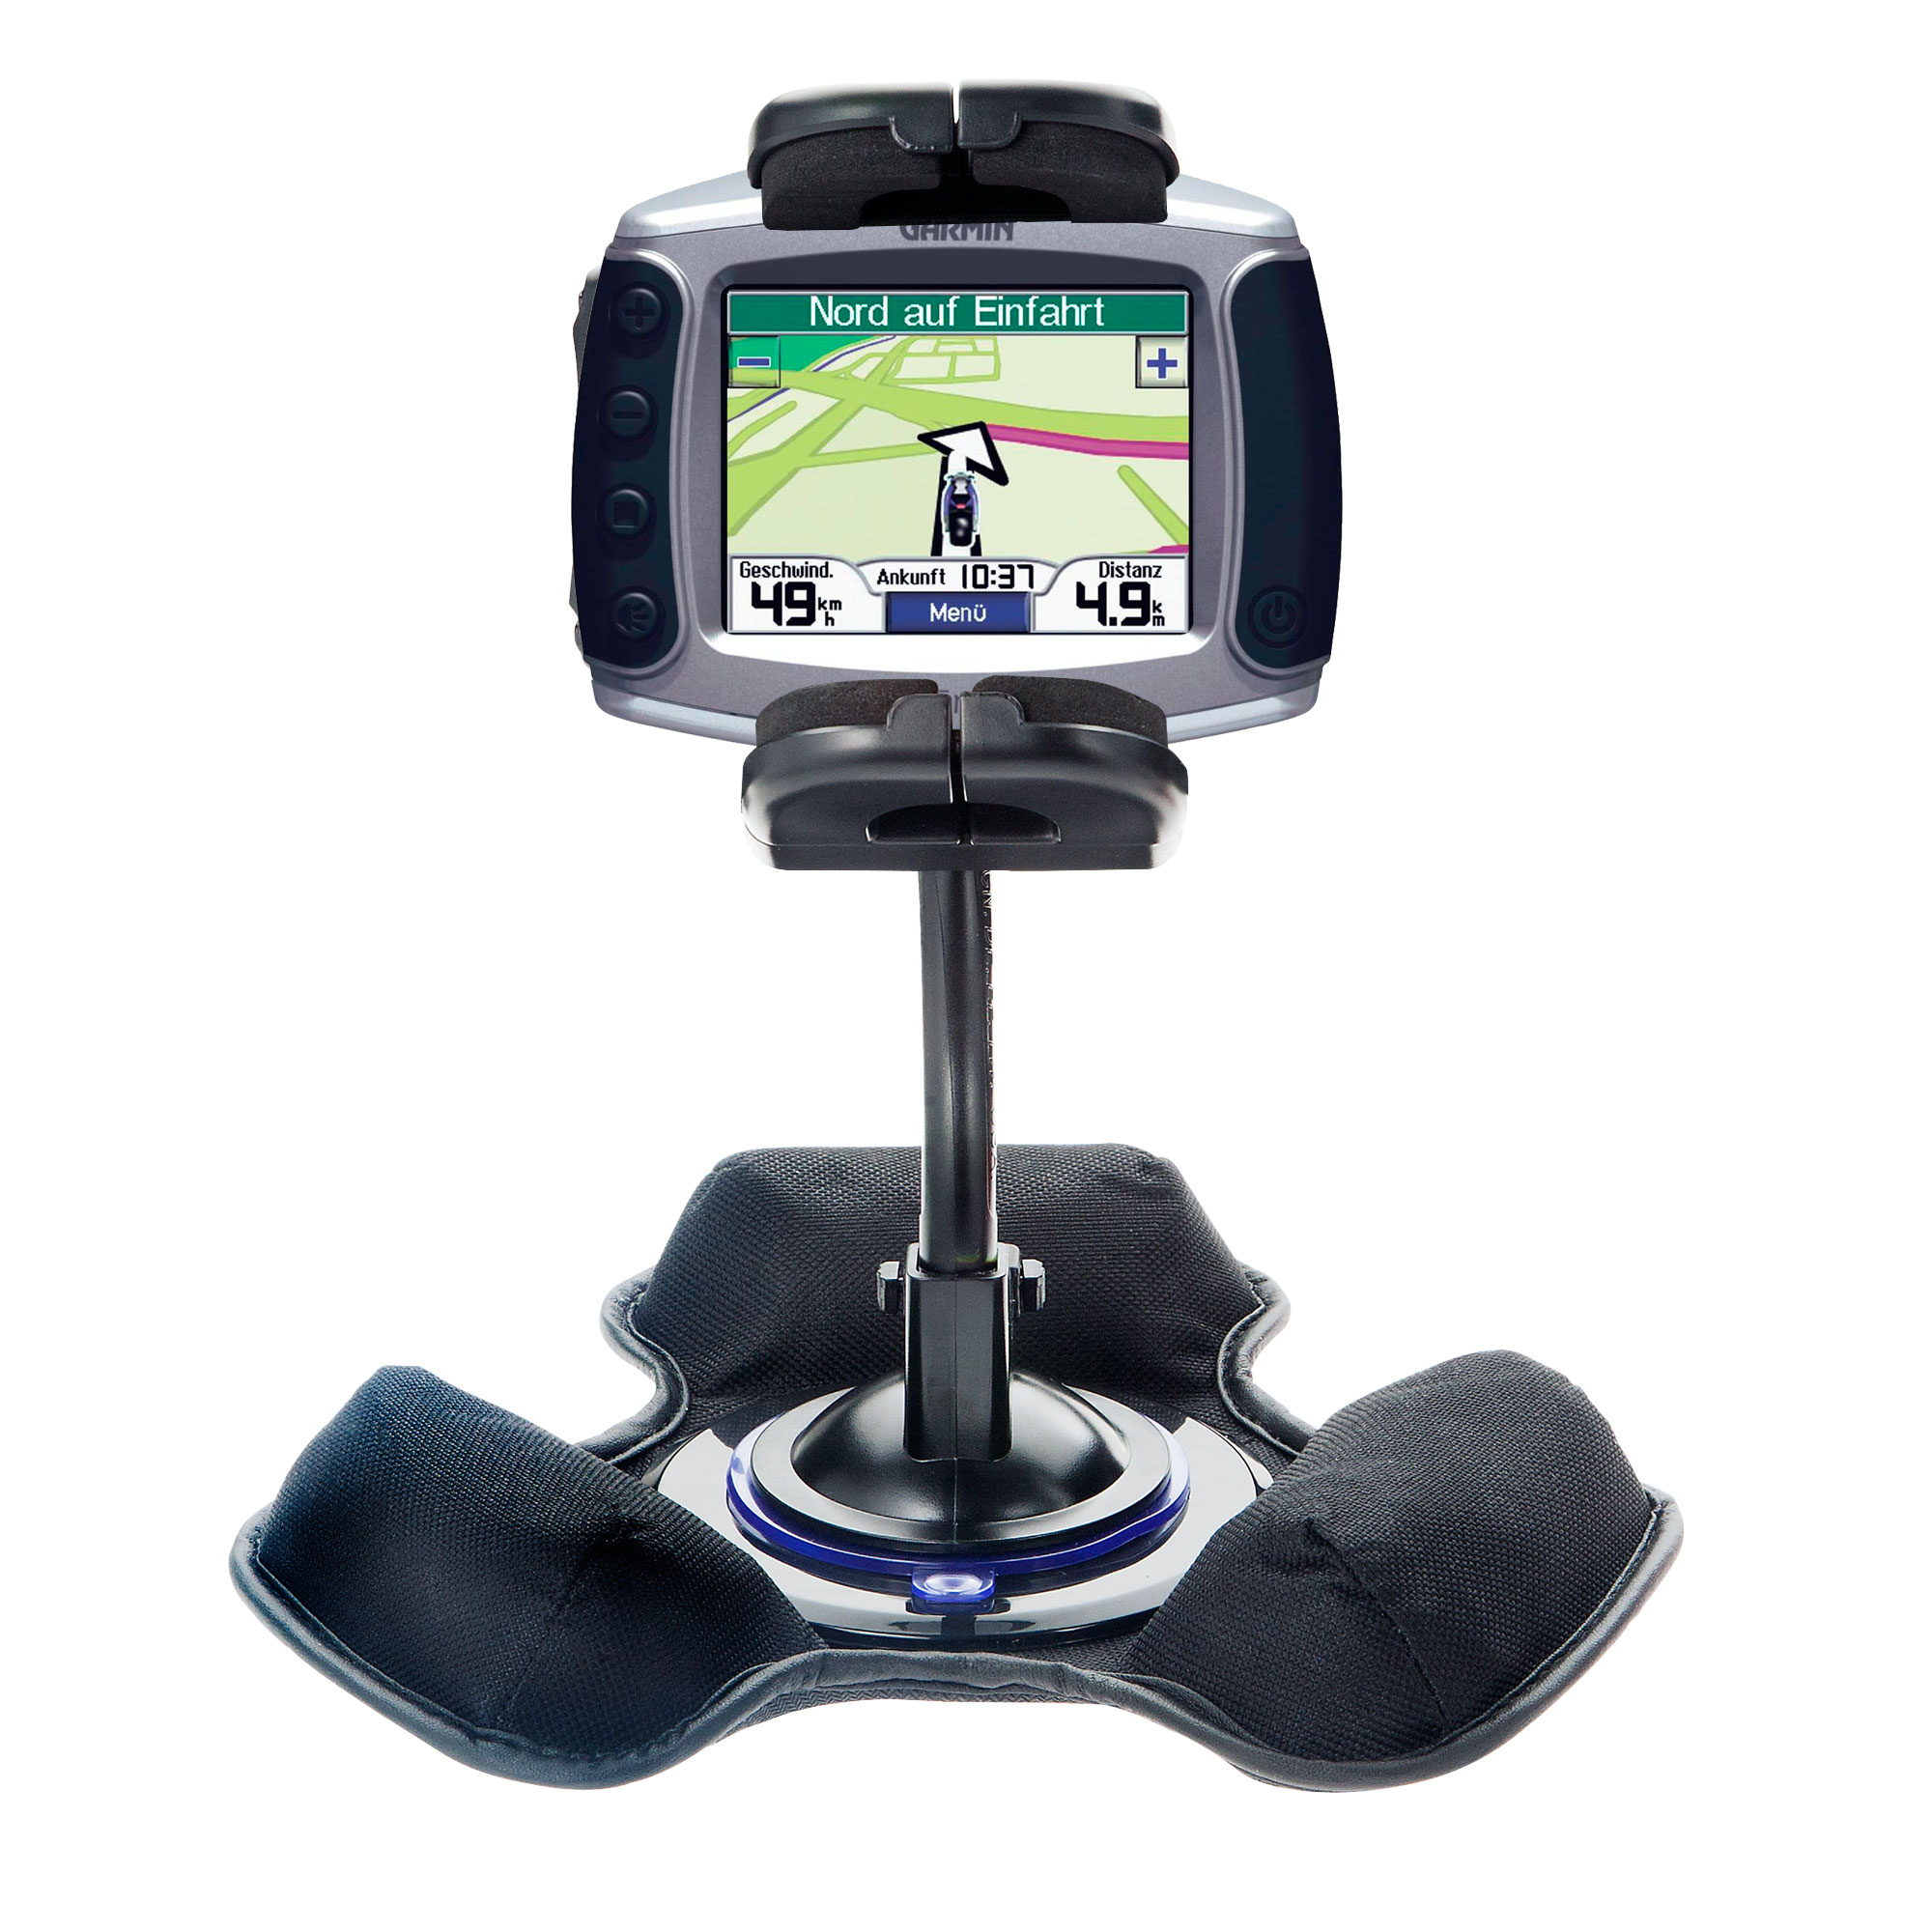 Dash and Windshield Holder compatible with the Garmin Zumo 450